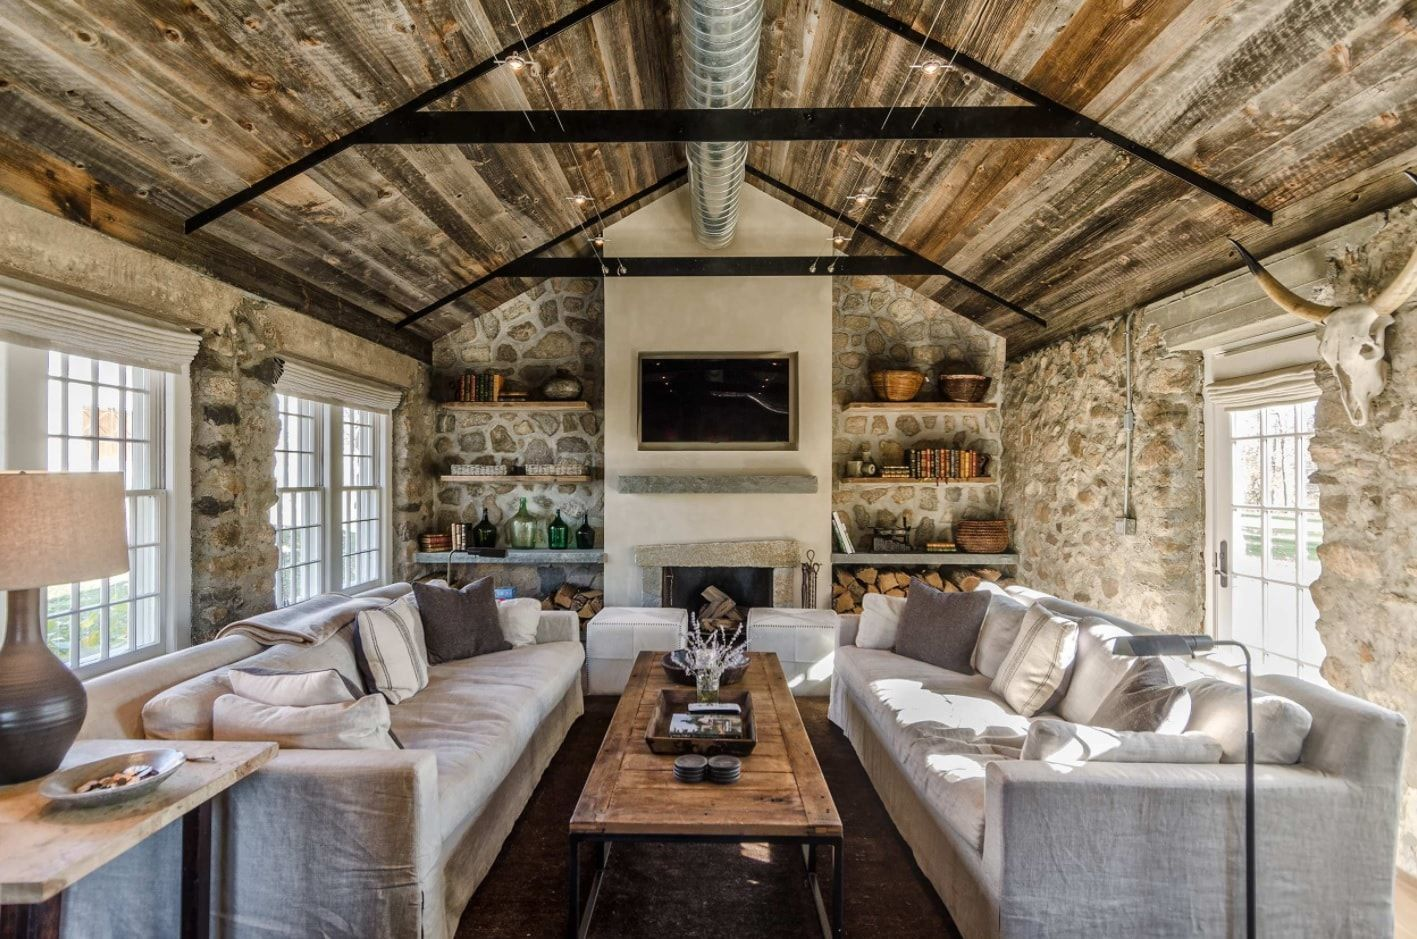 Industriality in the suburb house with stone walls